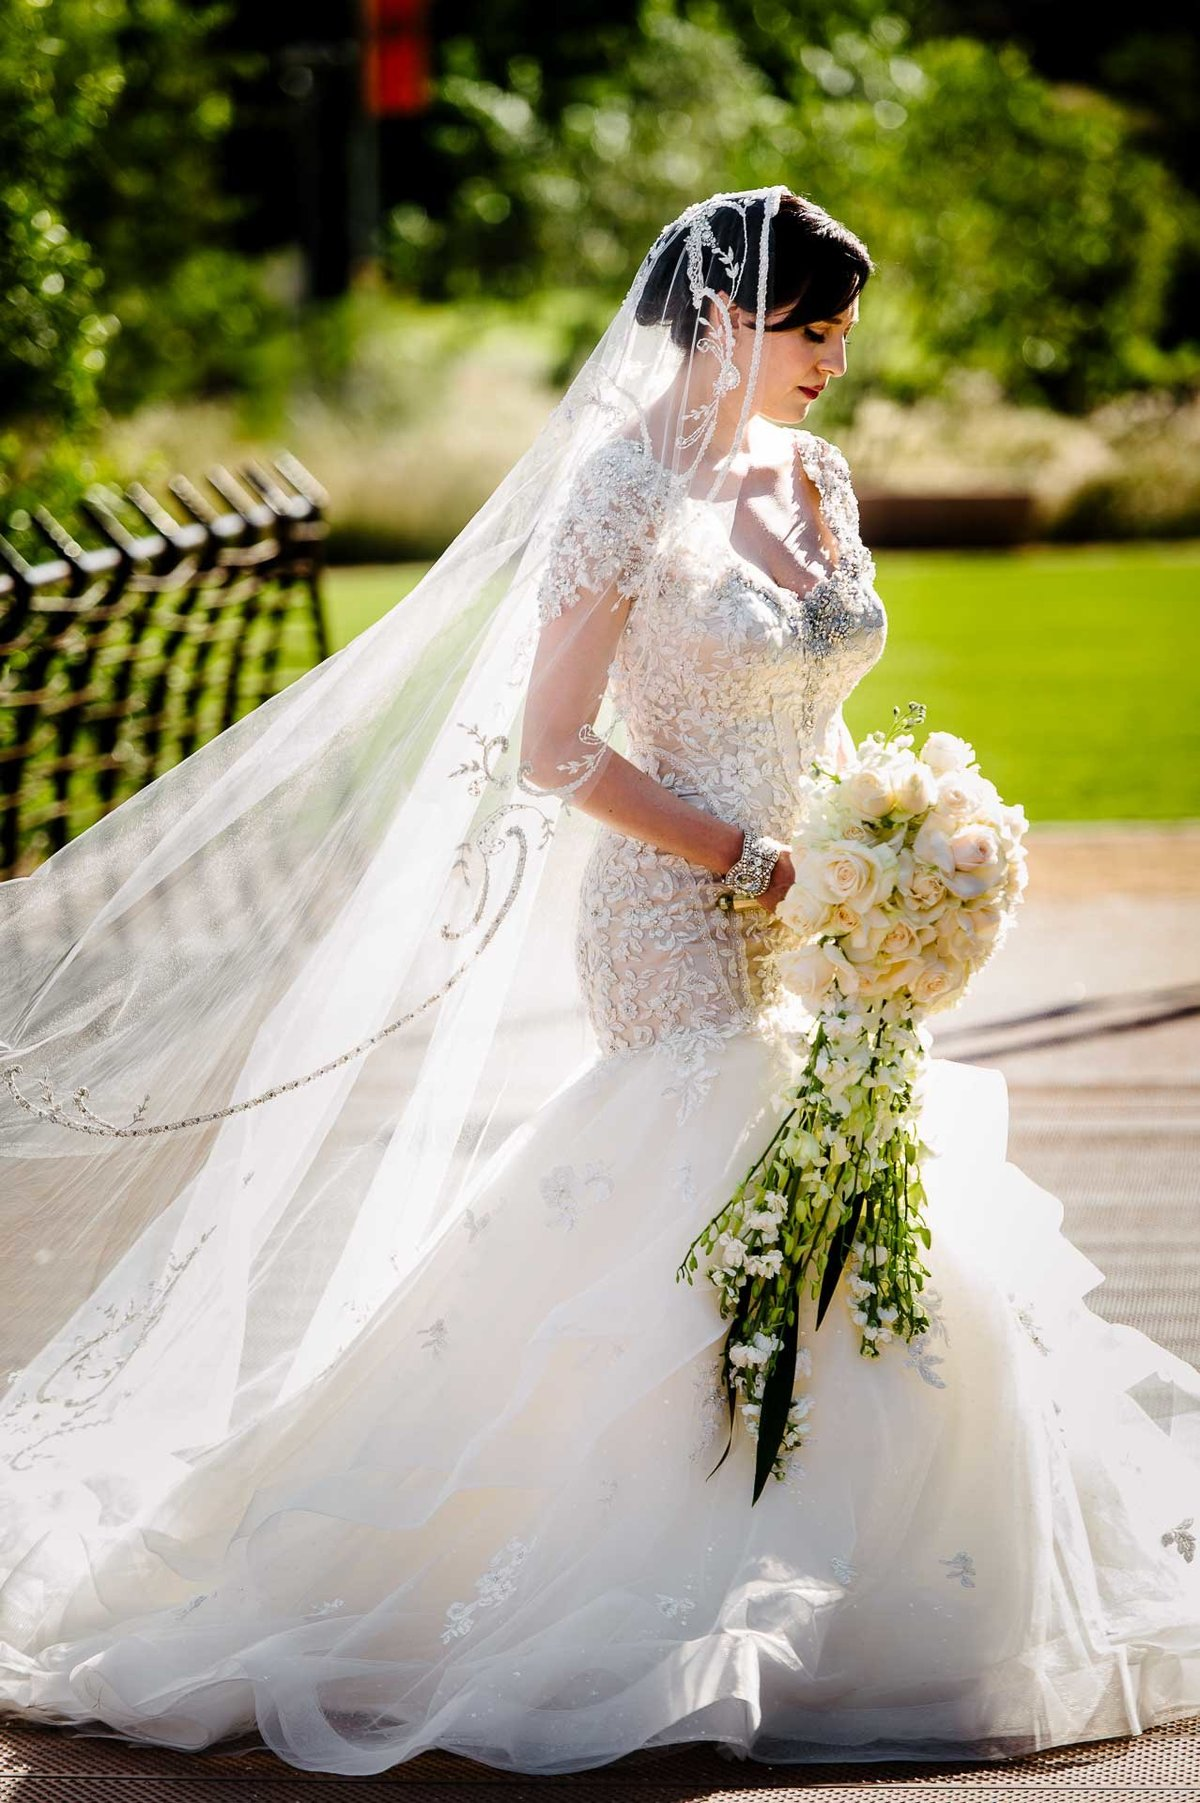 bride at utep in el paso texas by stephane lemaire photography